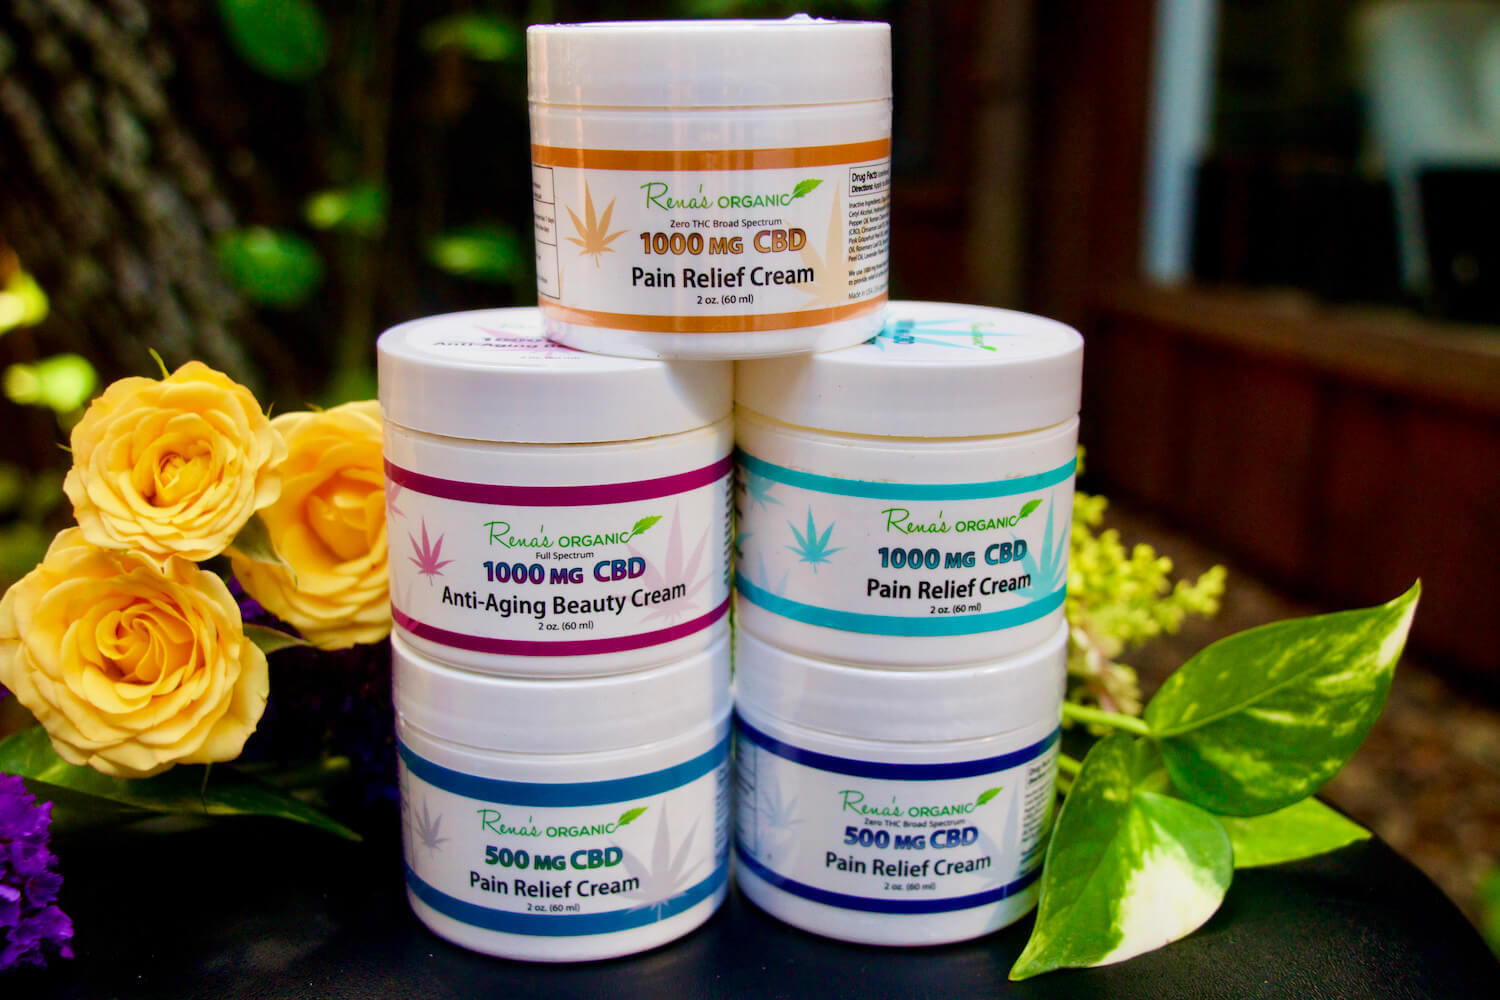 Rena's Organics also offers the best cbd cream on the market - cbd pain cream, cbd cream for back pain, cbd pain relief cream, cbd lotion for pain and Slender Cider on the market!